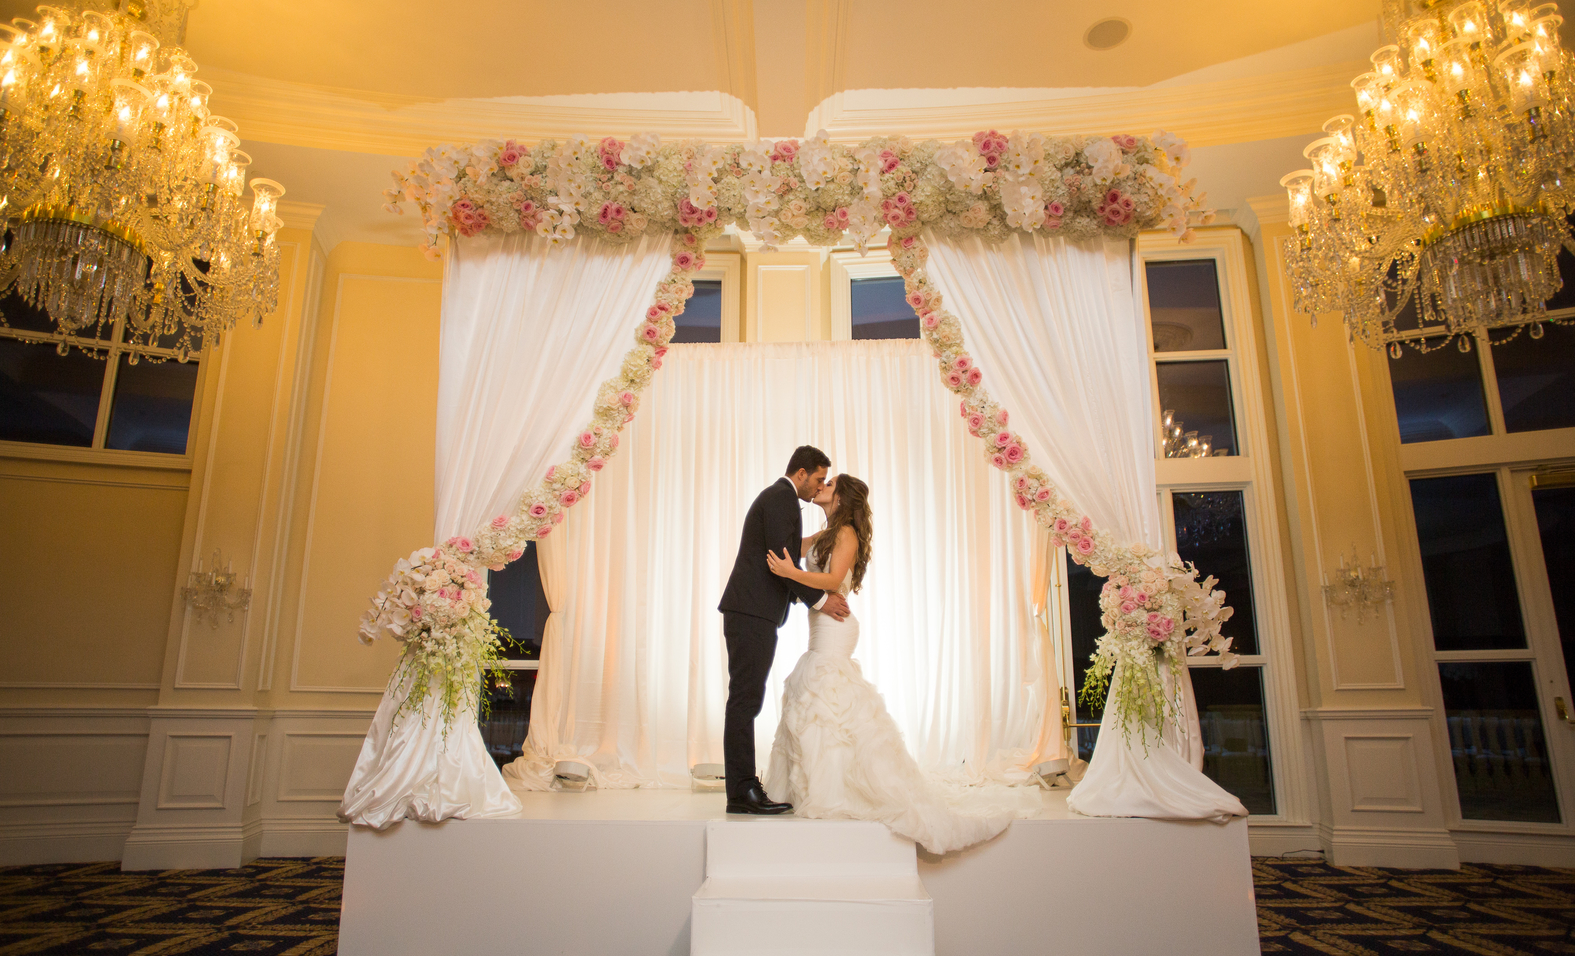 Panache Style - your wedding planning company for Fort Lauderdale and Miami